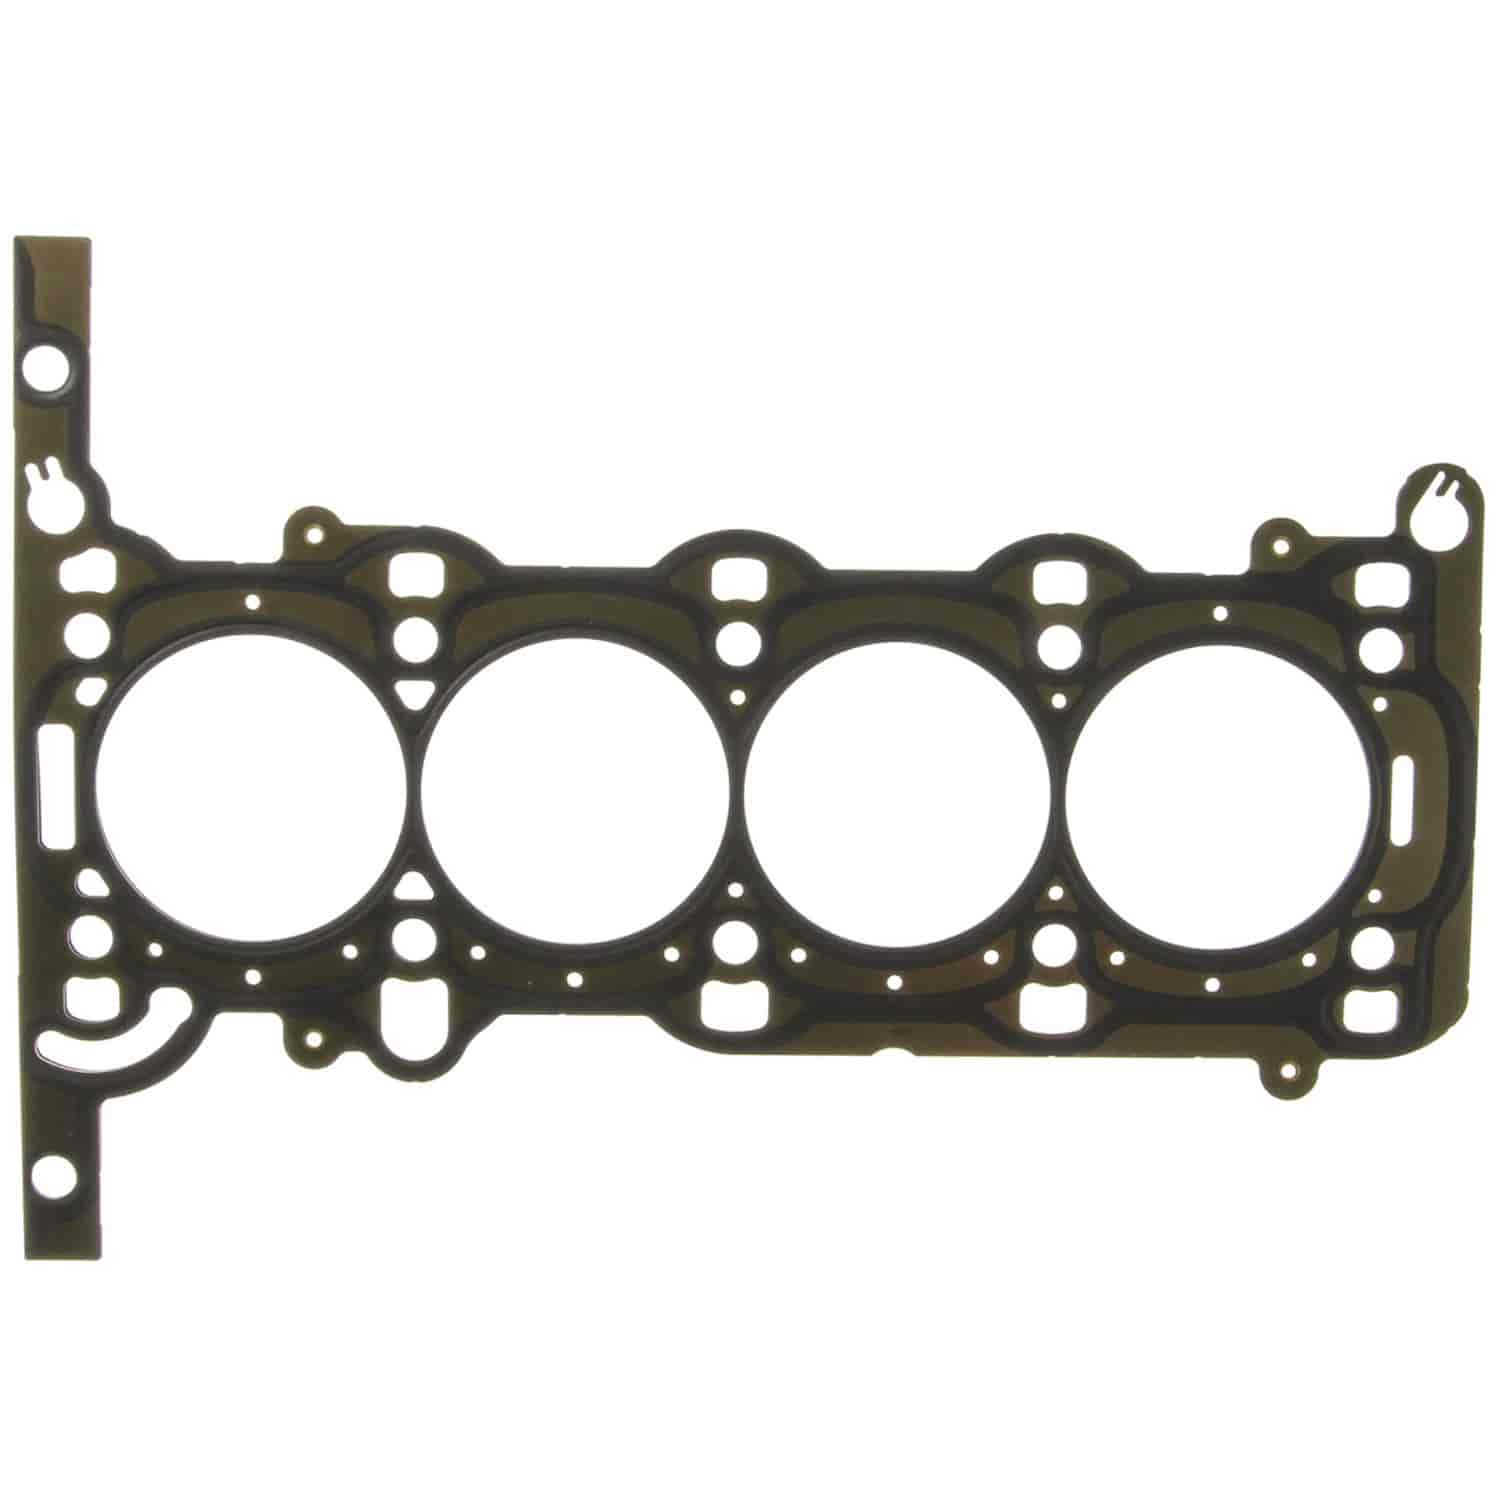 2019 Hyundai Veloster Head Gasket: Clevite MAHLE 54898: Cylinder Head Gasket GM 1.4L Turbo